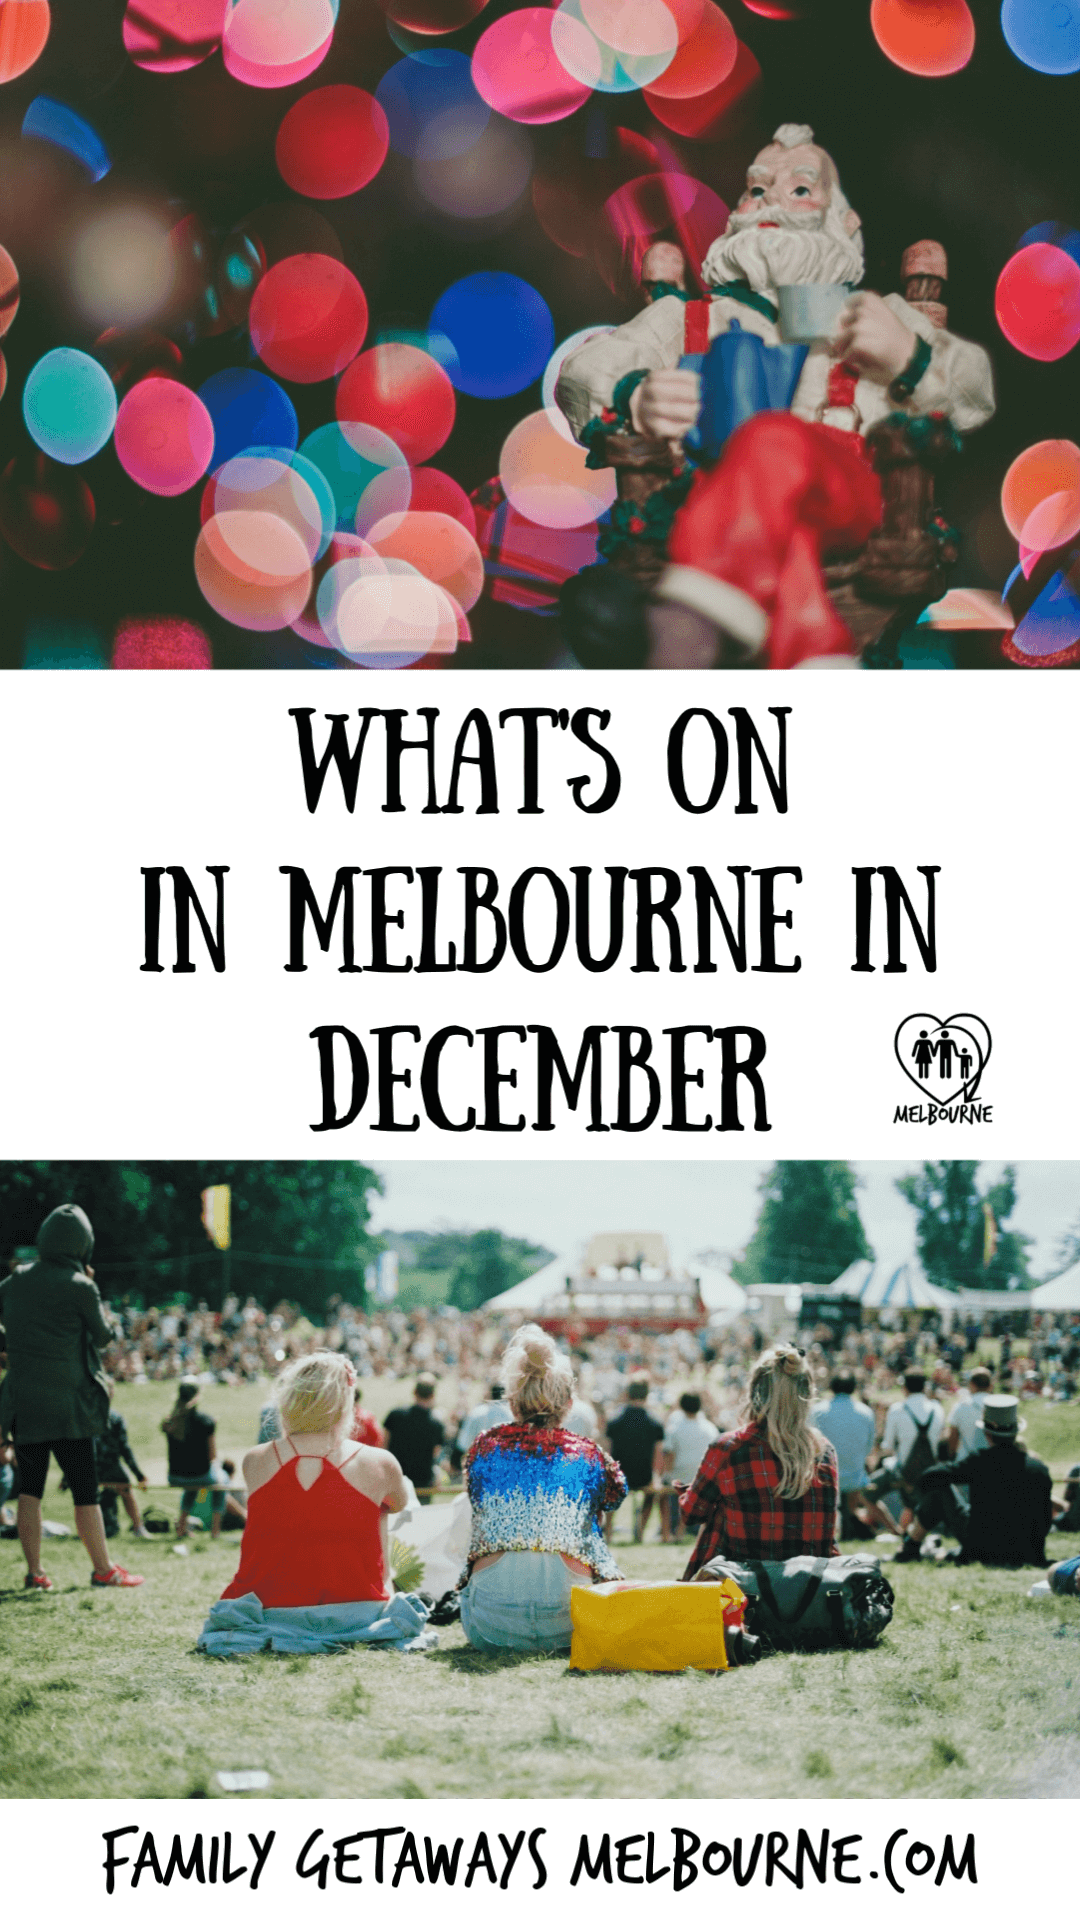 Events in December   Family getaways, Event, Things to do